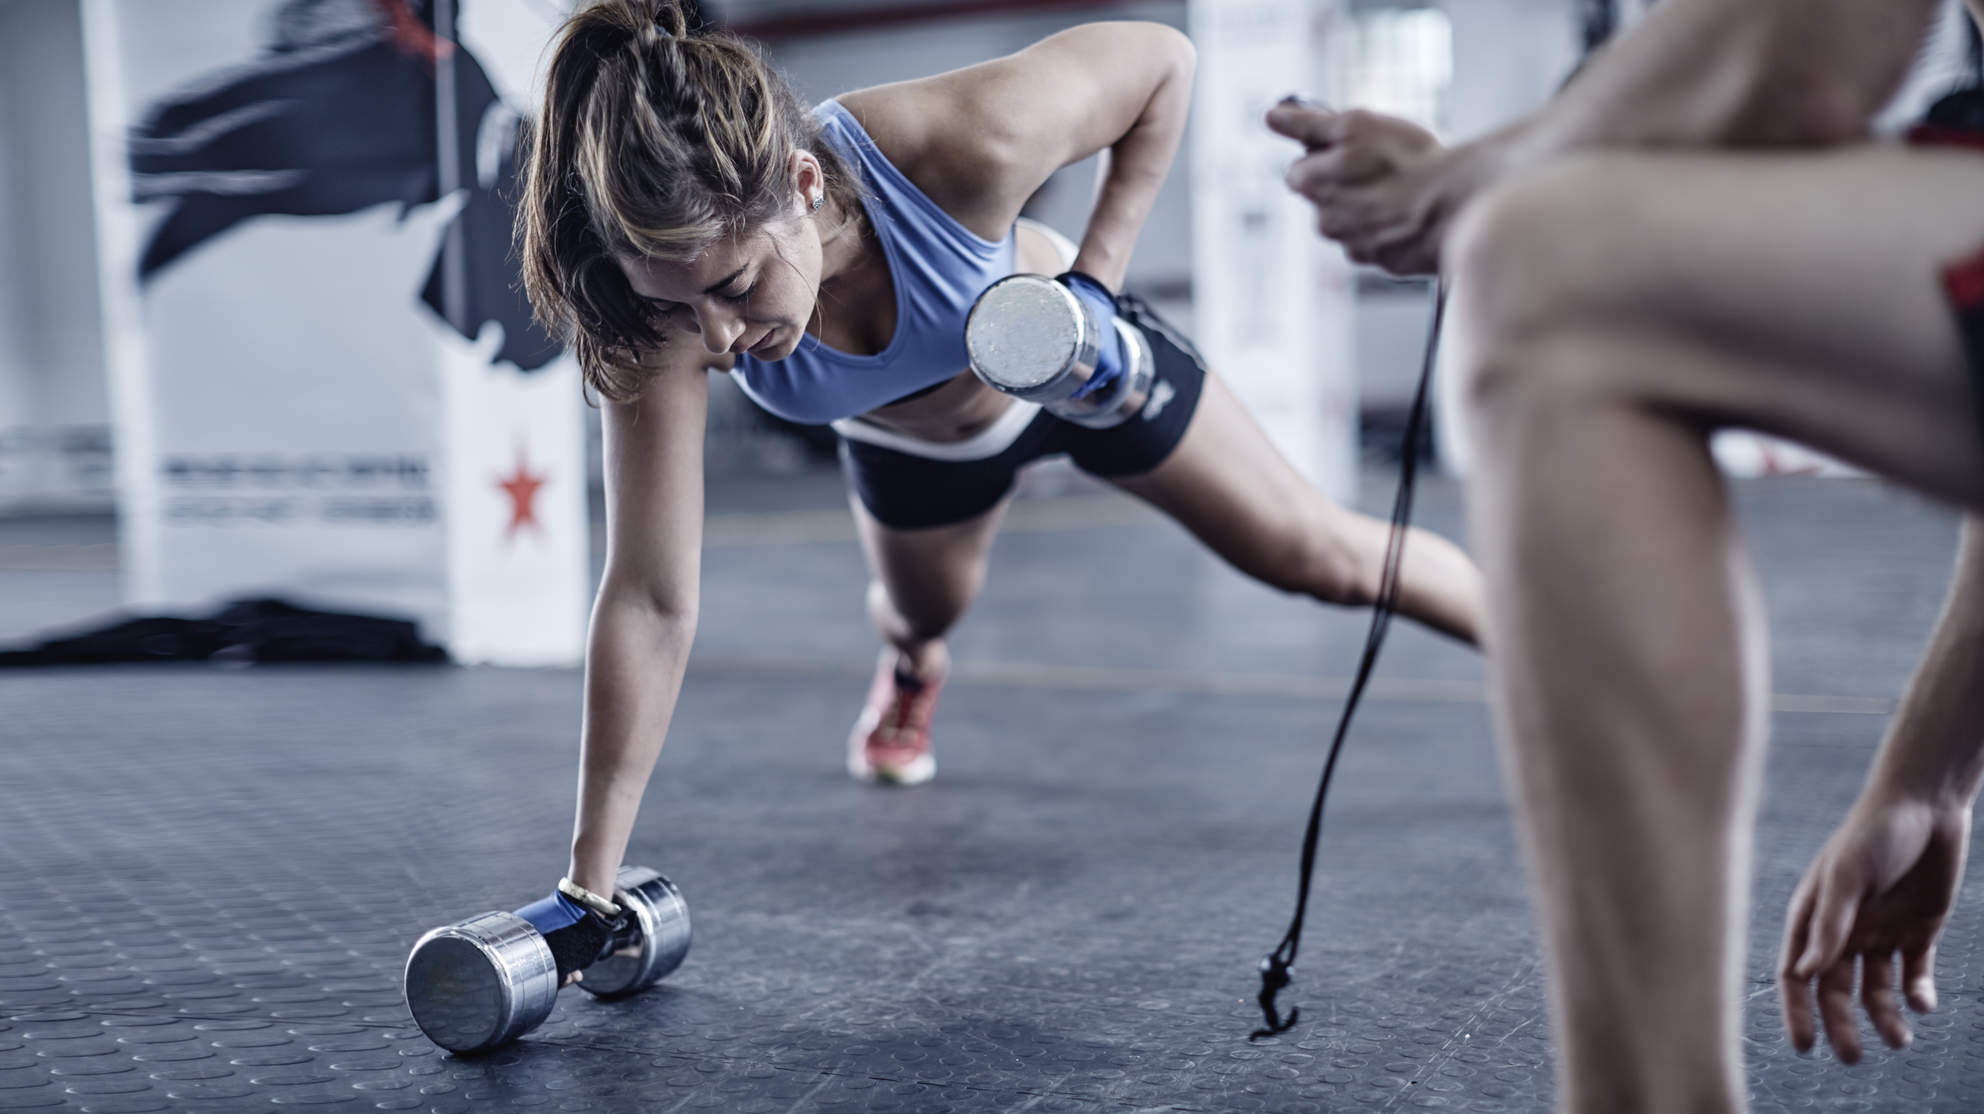 dumbbells-workout-gym-exercise-coach-trainer